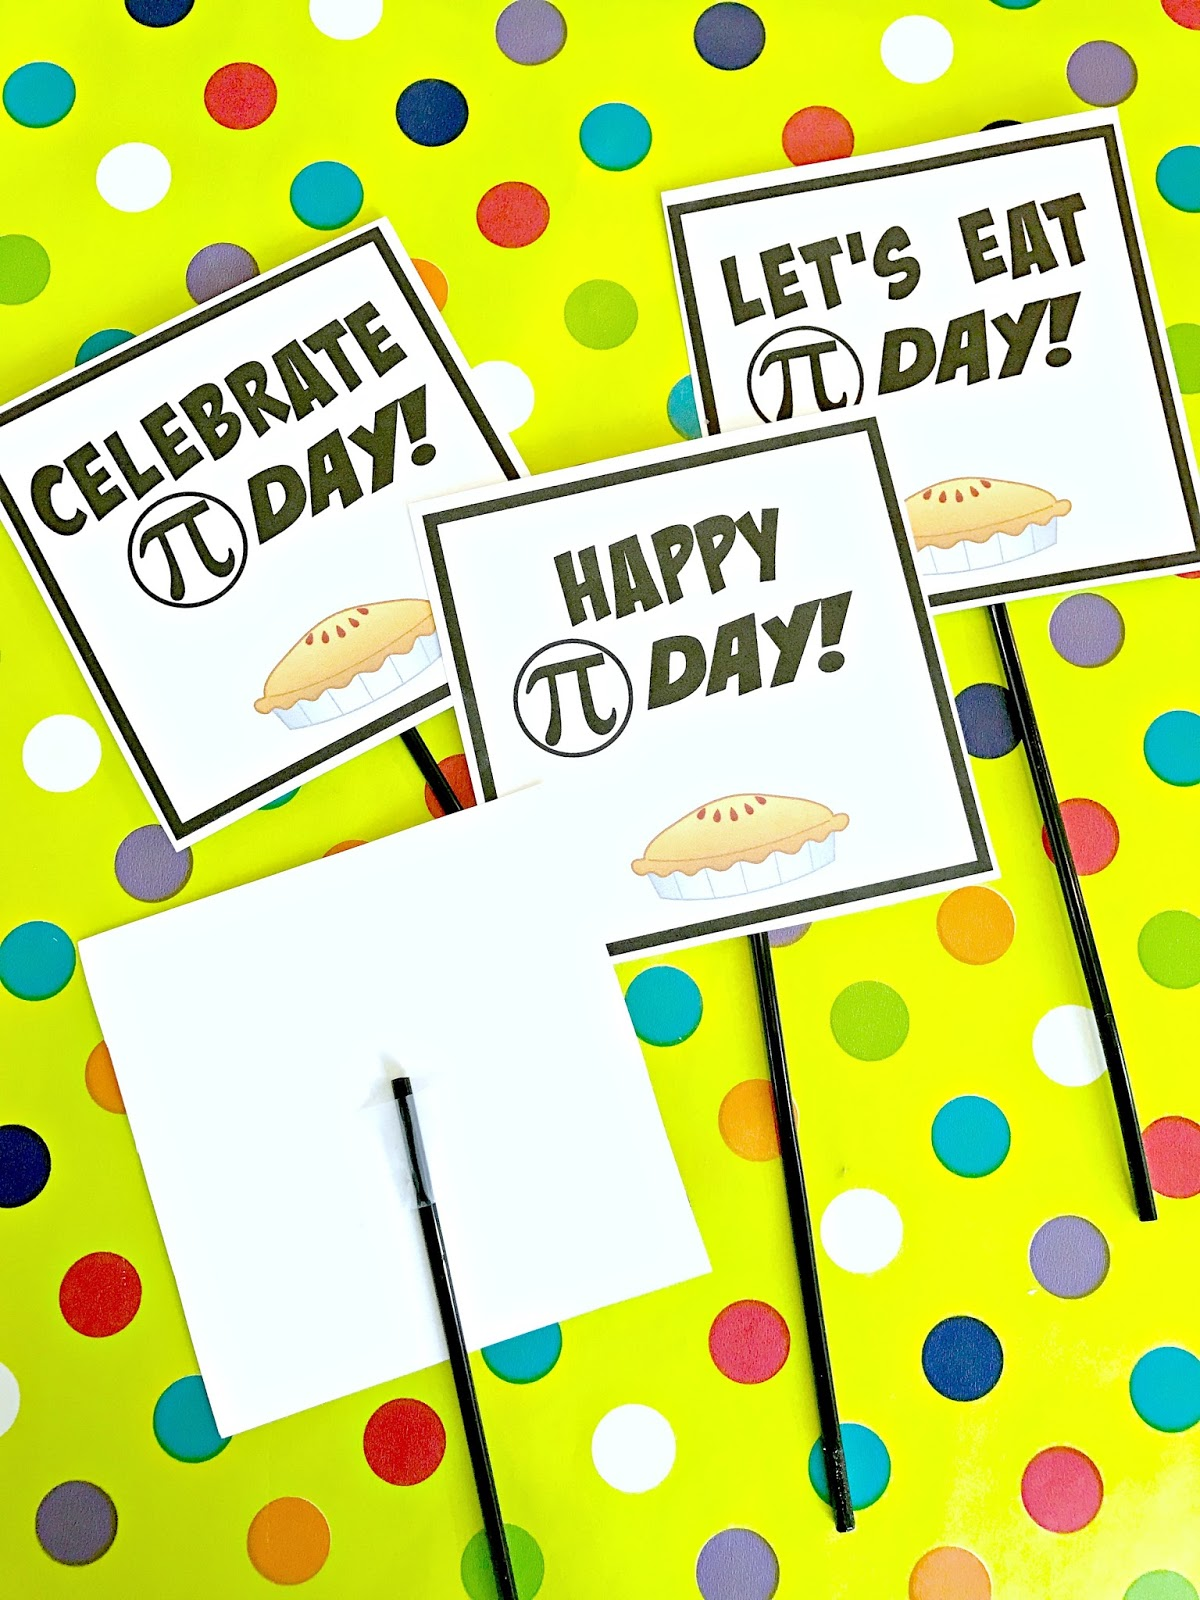 michelle paige blogs: pi day party with free printables